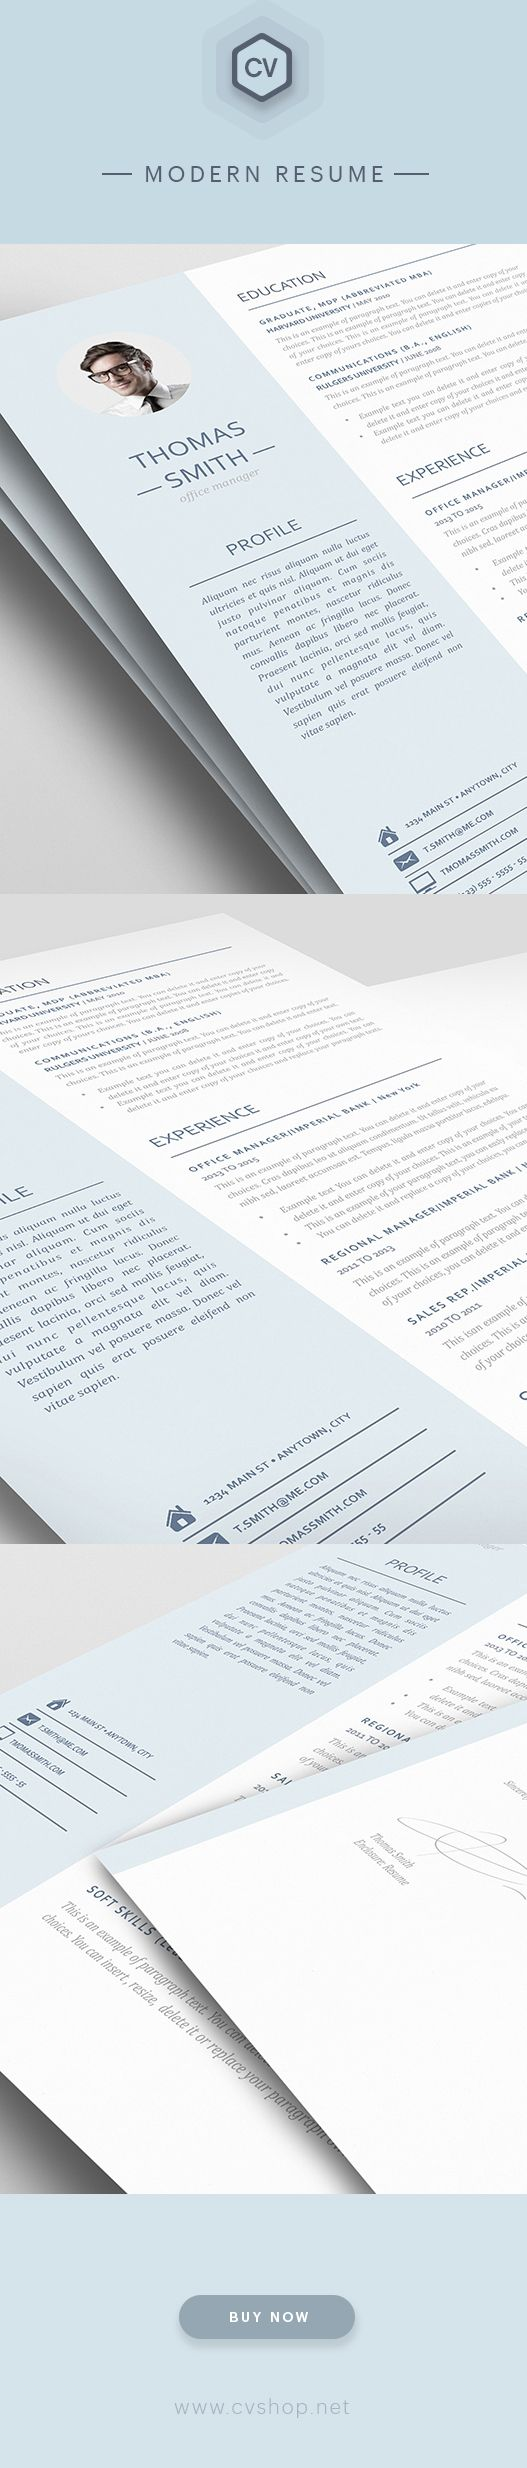 17 best images about cv word templates modern resume template 110970 ⎜modern resume templates cvshop net cvshop